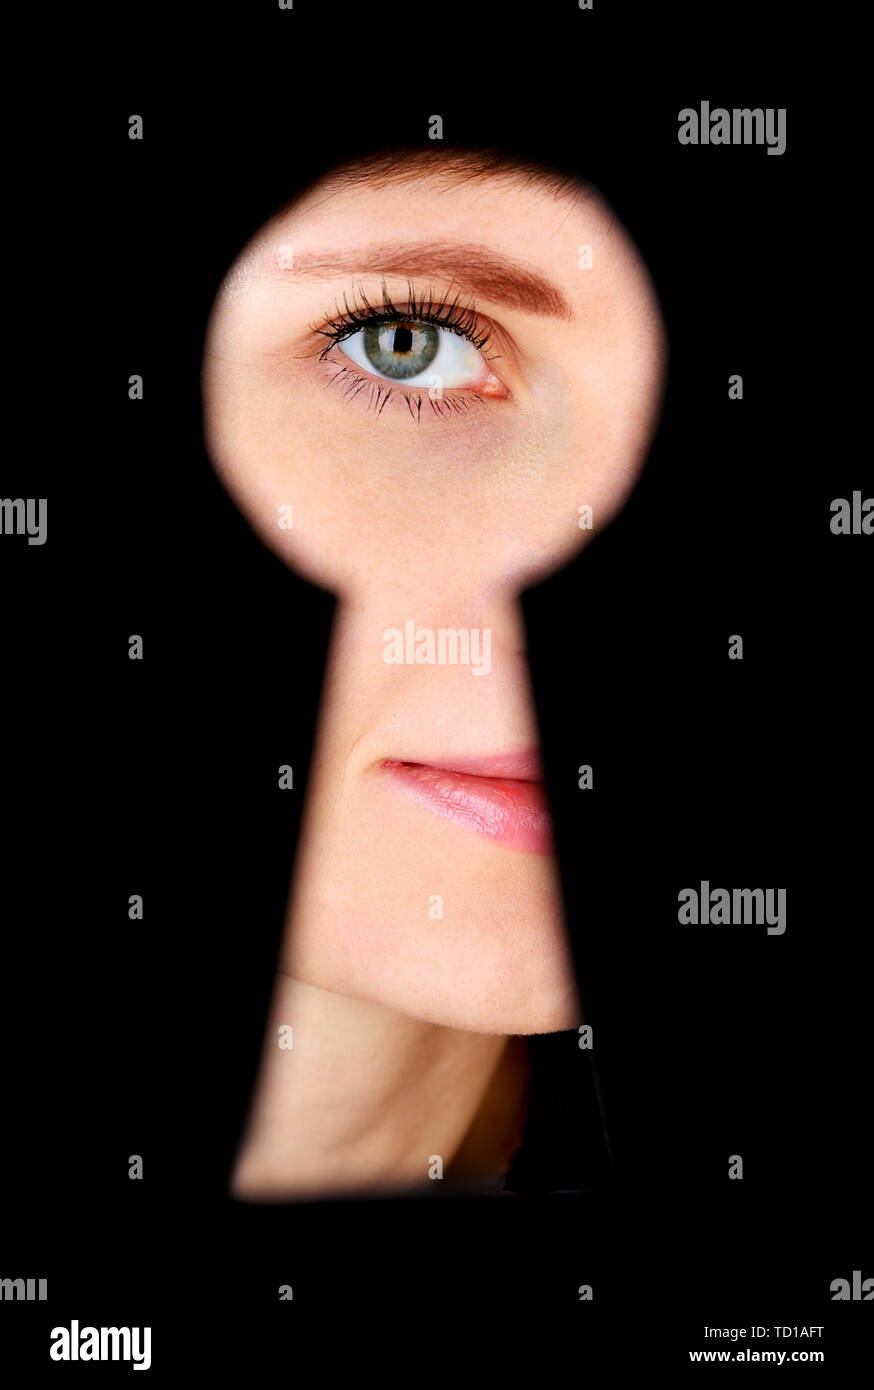 Woman eye looking through hole in keyhole, on black background - Stock Image